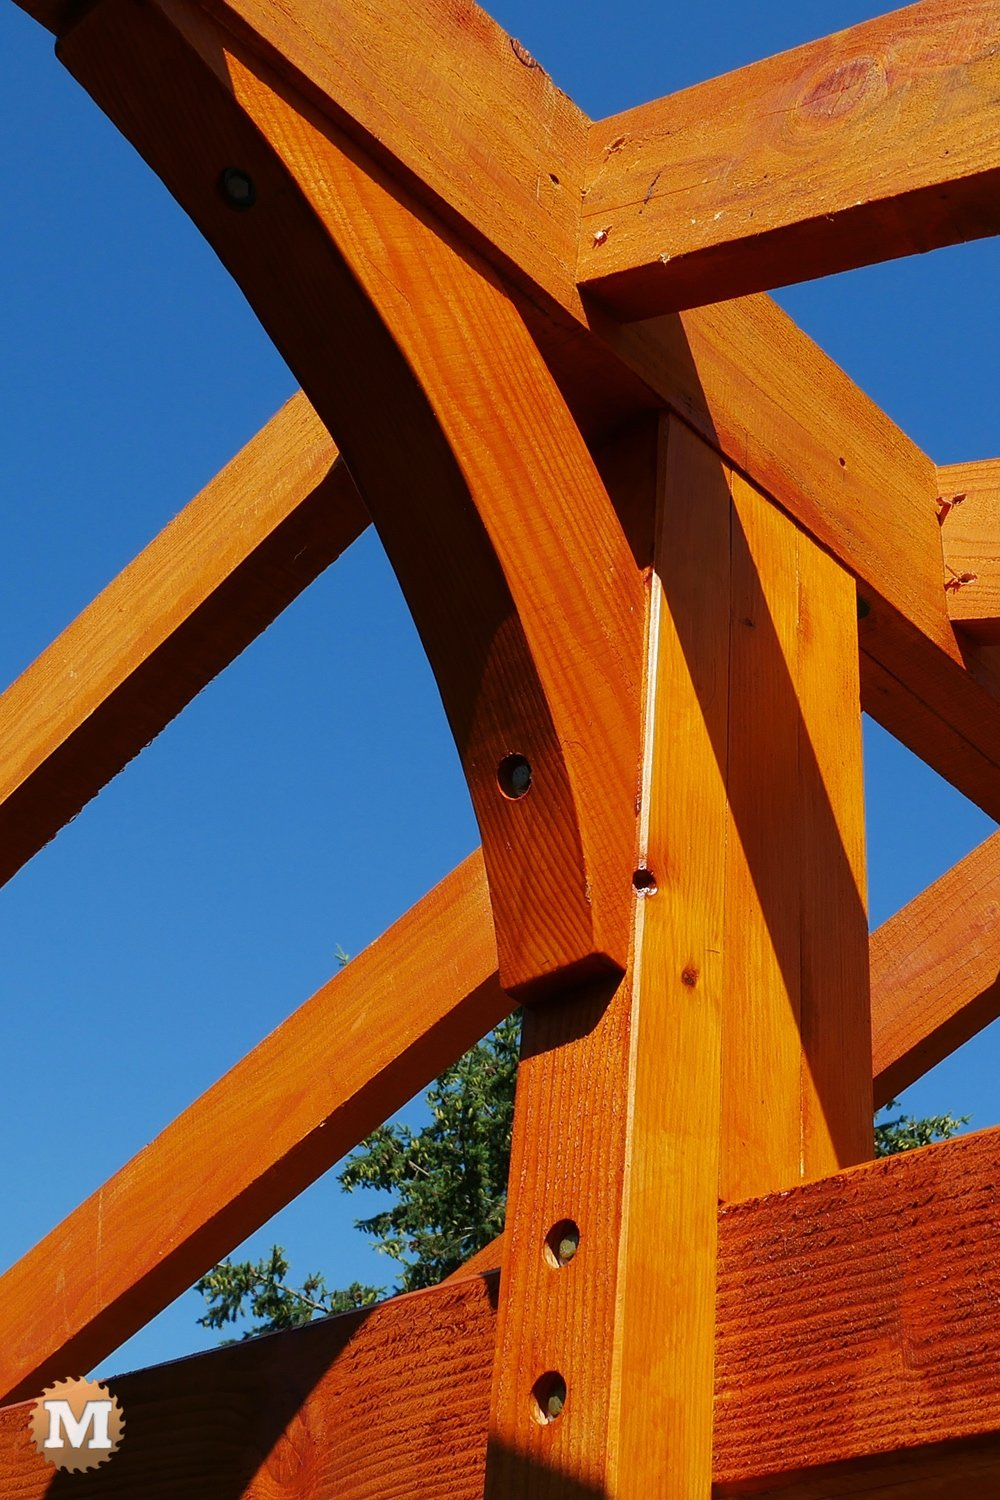 Post and Beam joinery on a Three Gable Pavilion